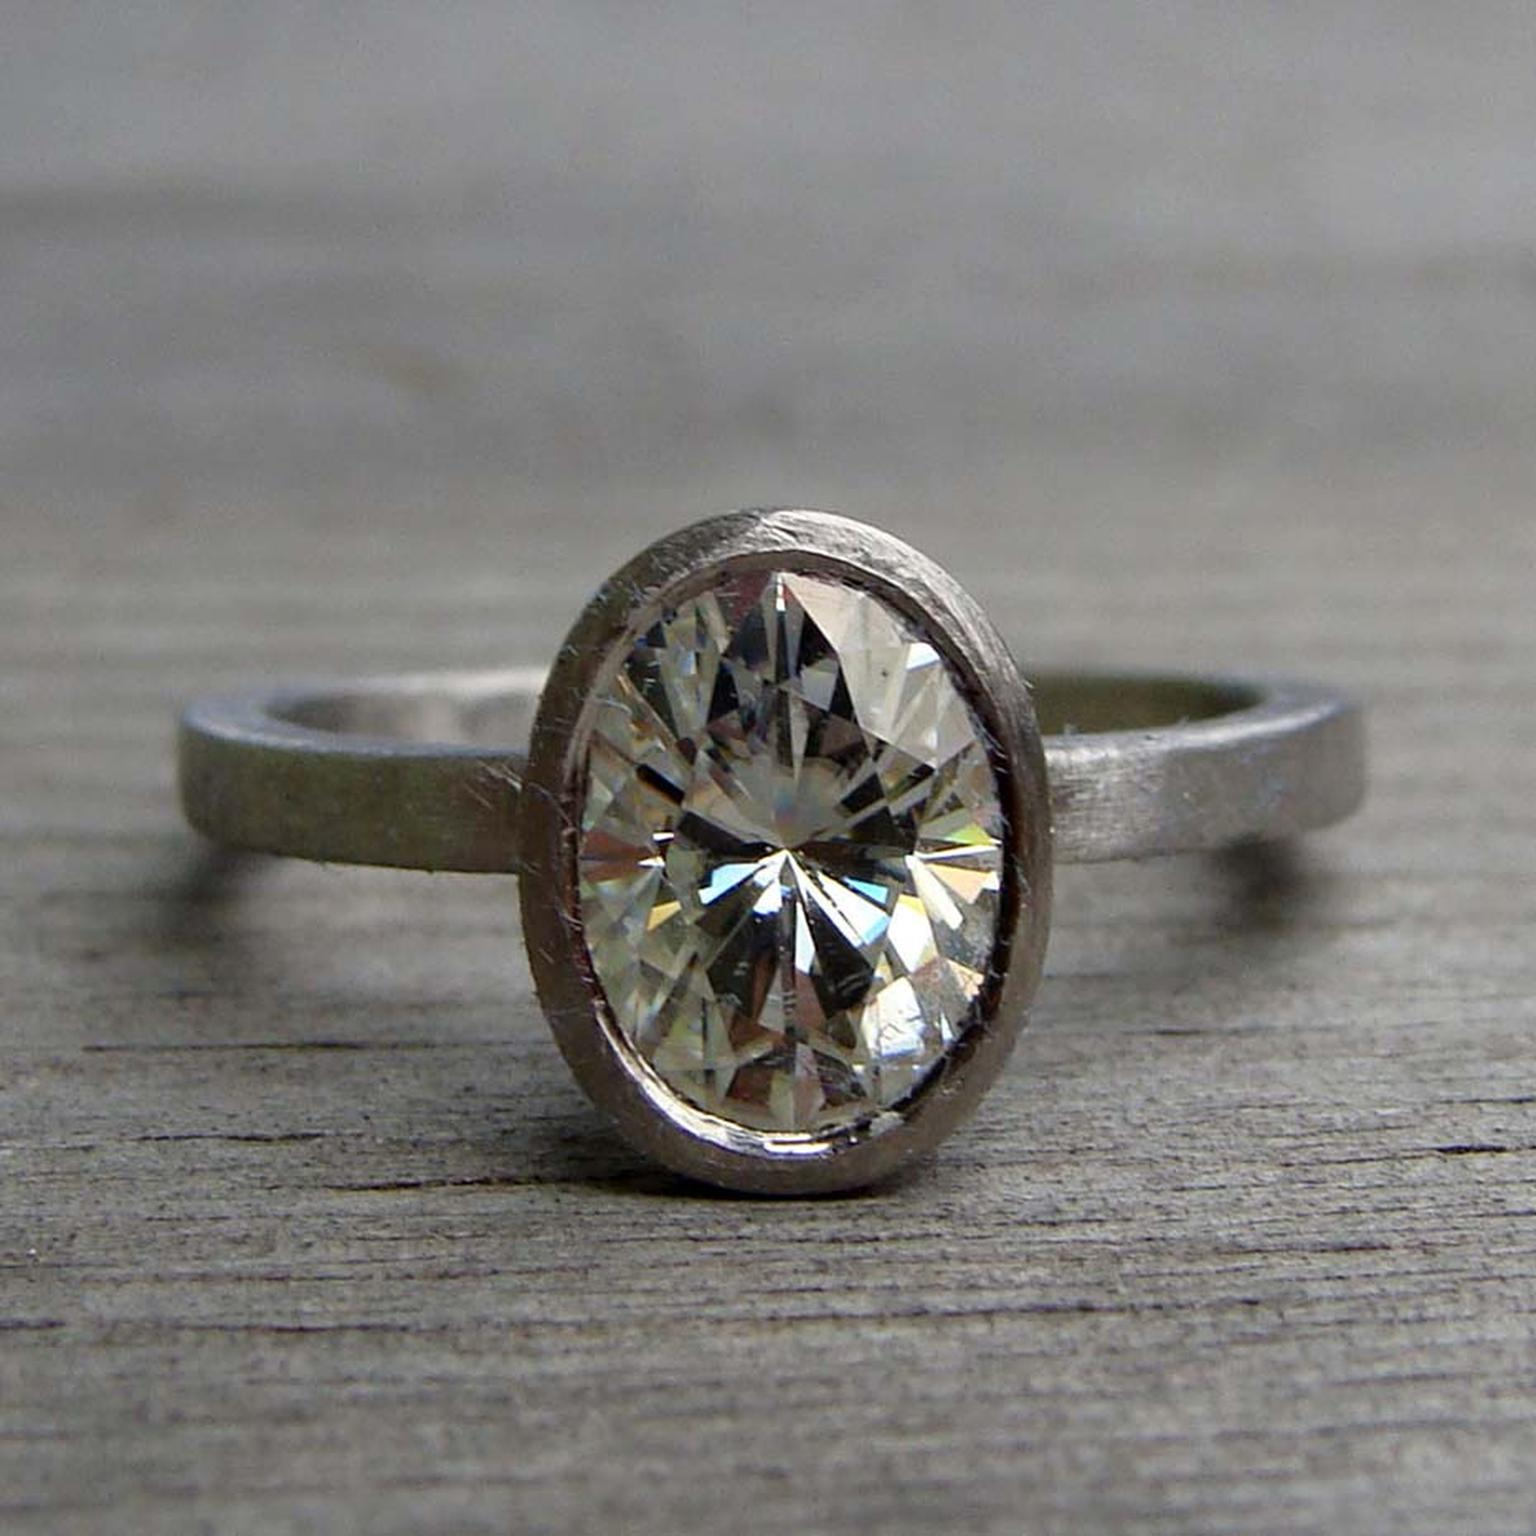 McFarland Designs recycled white gold engagement ring featuring a Forever Brilliant Moissanite.